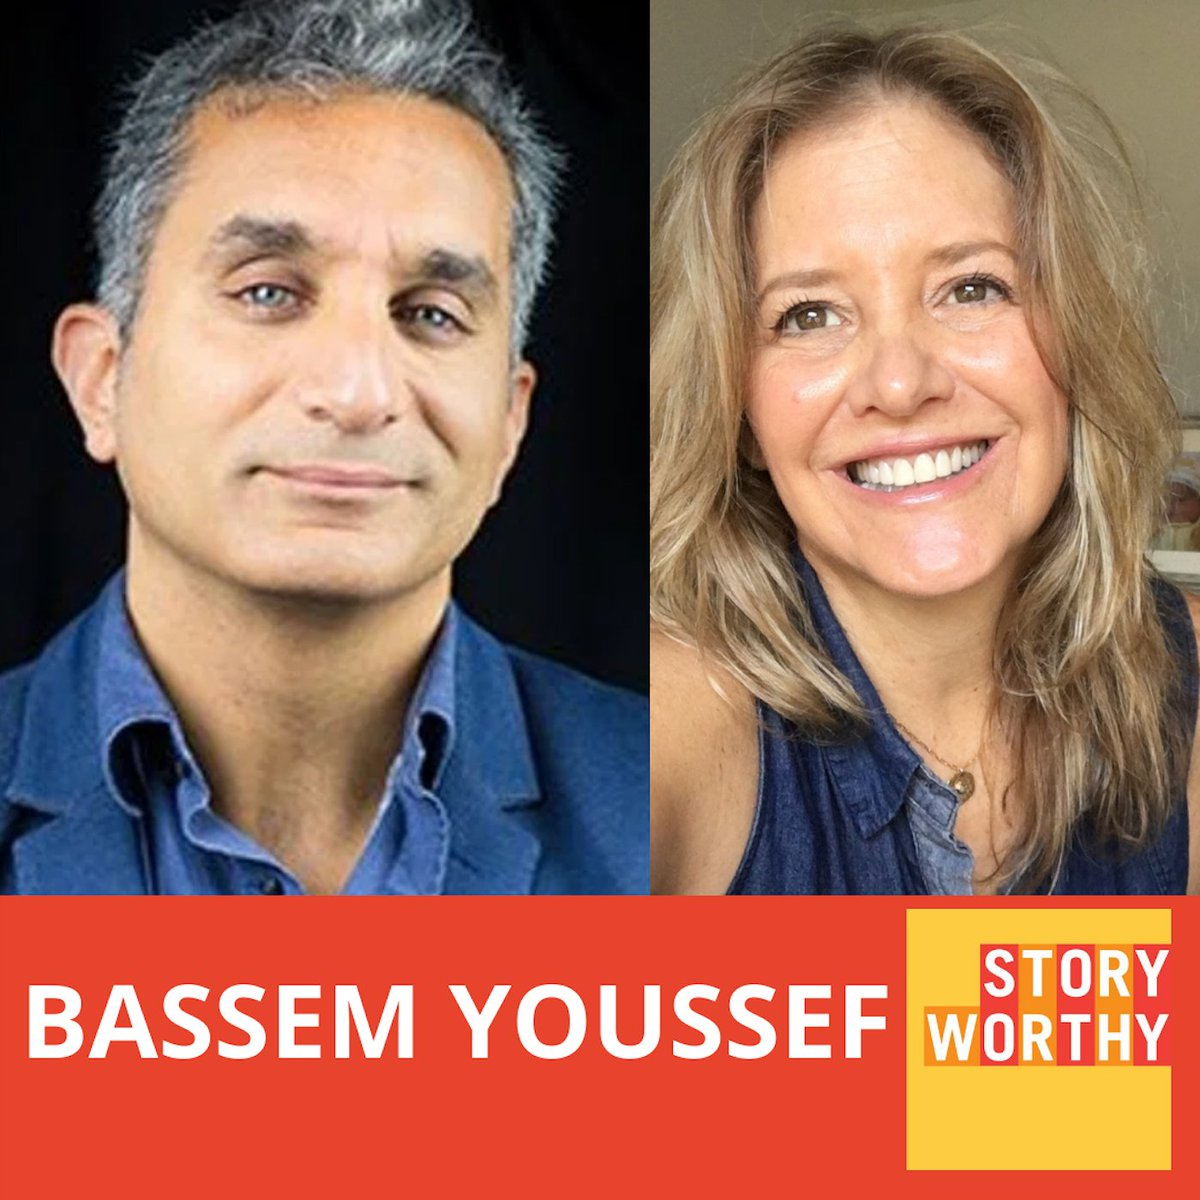 """Comic/Author Bassem Youssef @Byoussef (The Magical Reality of Nadia) was a star in Egypt with his show """"El-Bernameg"""" until the government turned against him and he was """"cancelled"""" and had to flee.  Listen to this incredible story https://t.co/ysaGBooe5d #Egypt #Interrogation https://t.co/netX9ynmjc"""